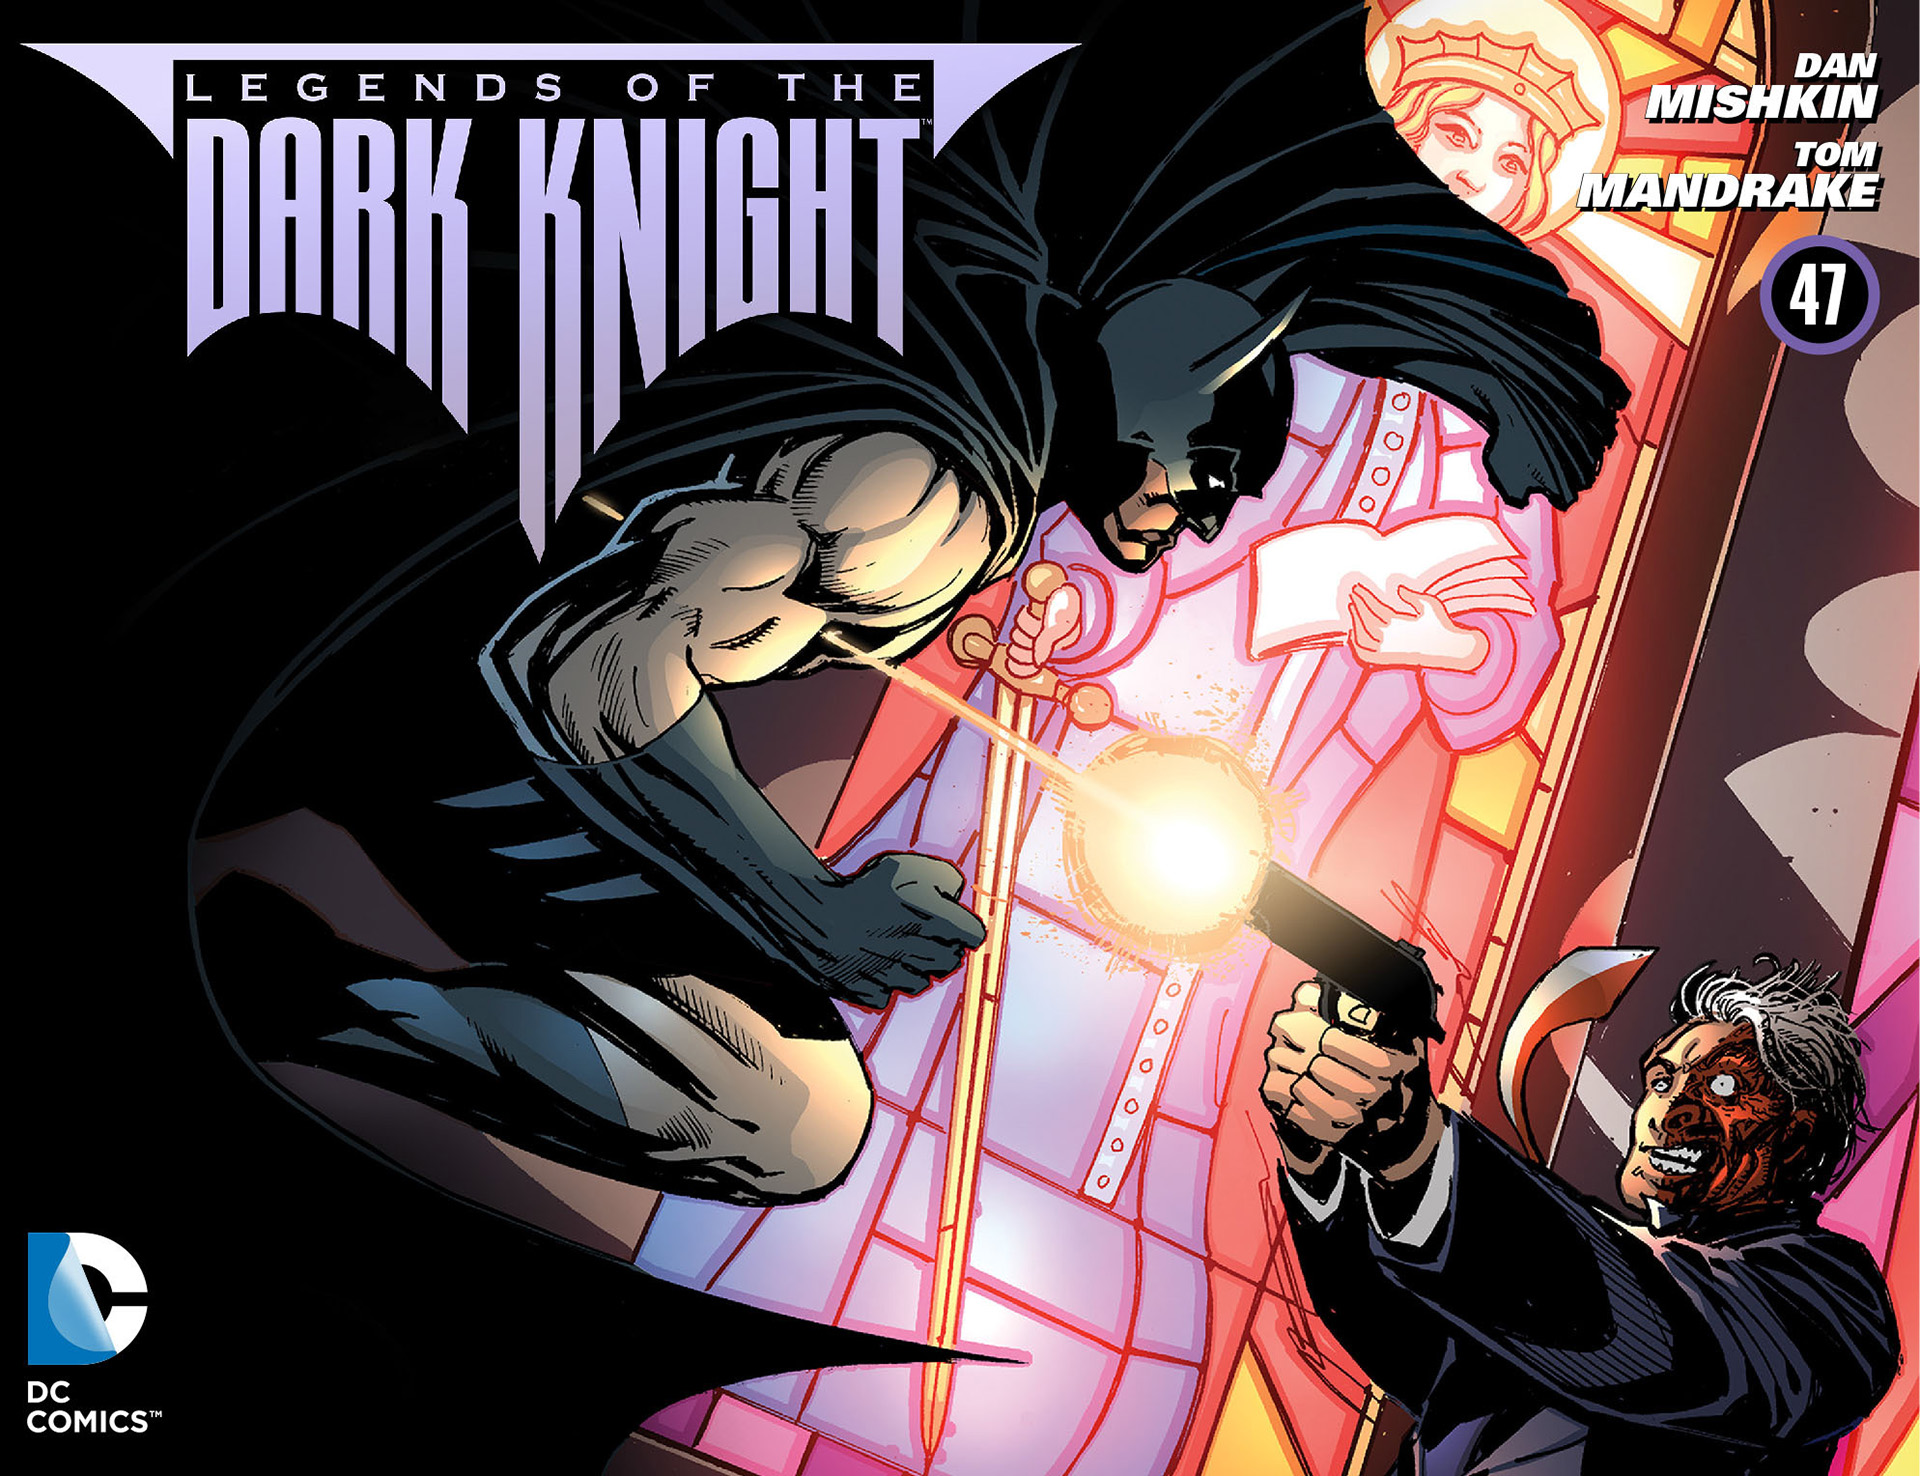 Legends of the Dark Knight [I] issue 47 - Page 1